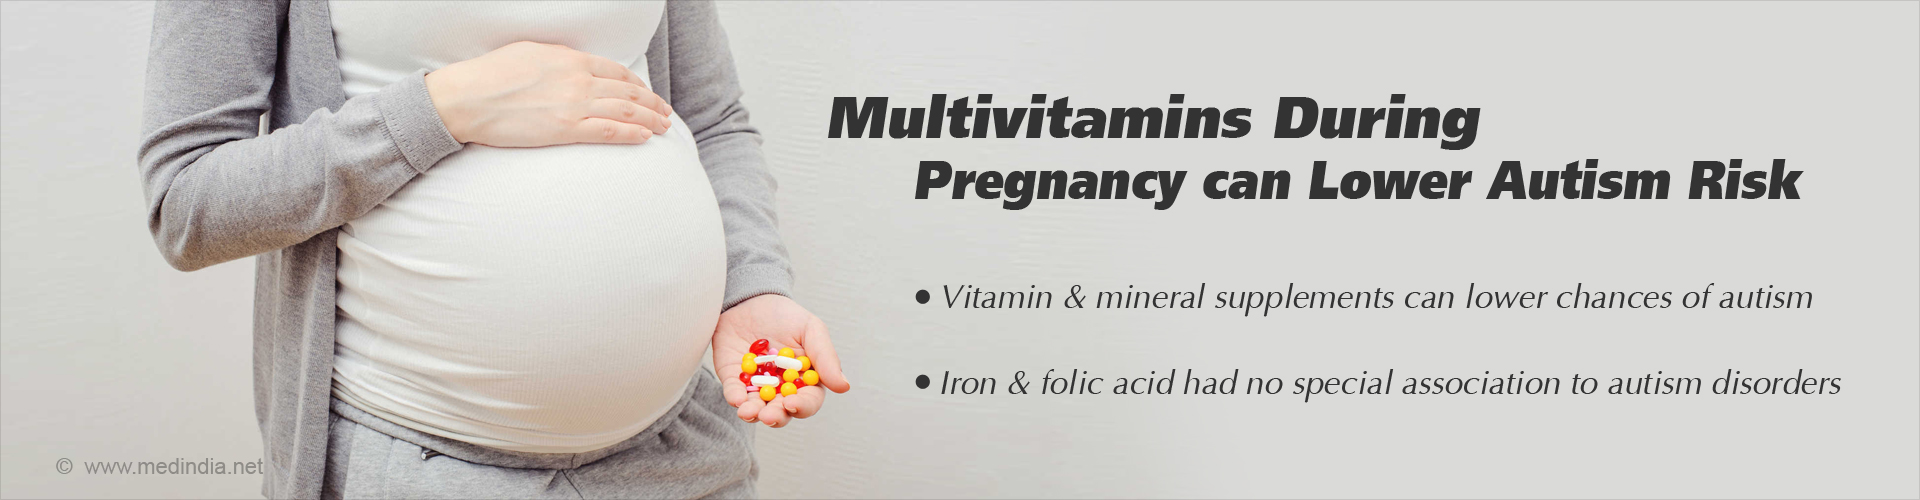 Multivitamins during pregnancy can lower autism risk - Vitamin & mineral supplements can lower chances of autism - Iron & folic acid had no special association to autism disorders